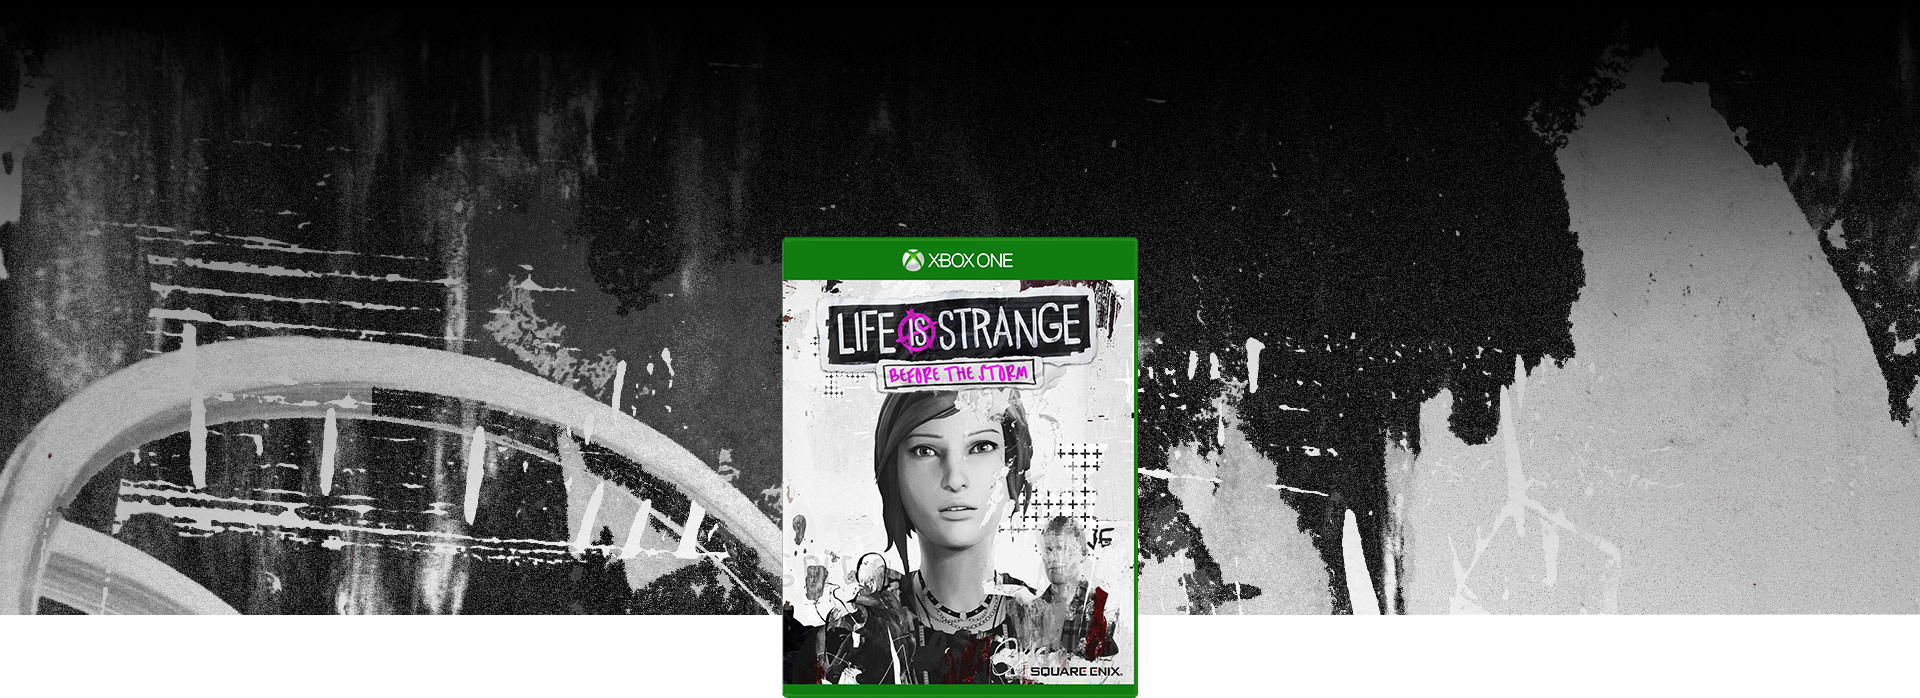 Imagen de la caja de Life is Strange: Before the Storm. Collage rayado en el fondo